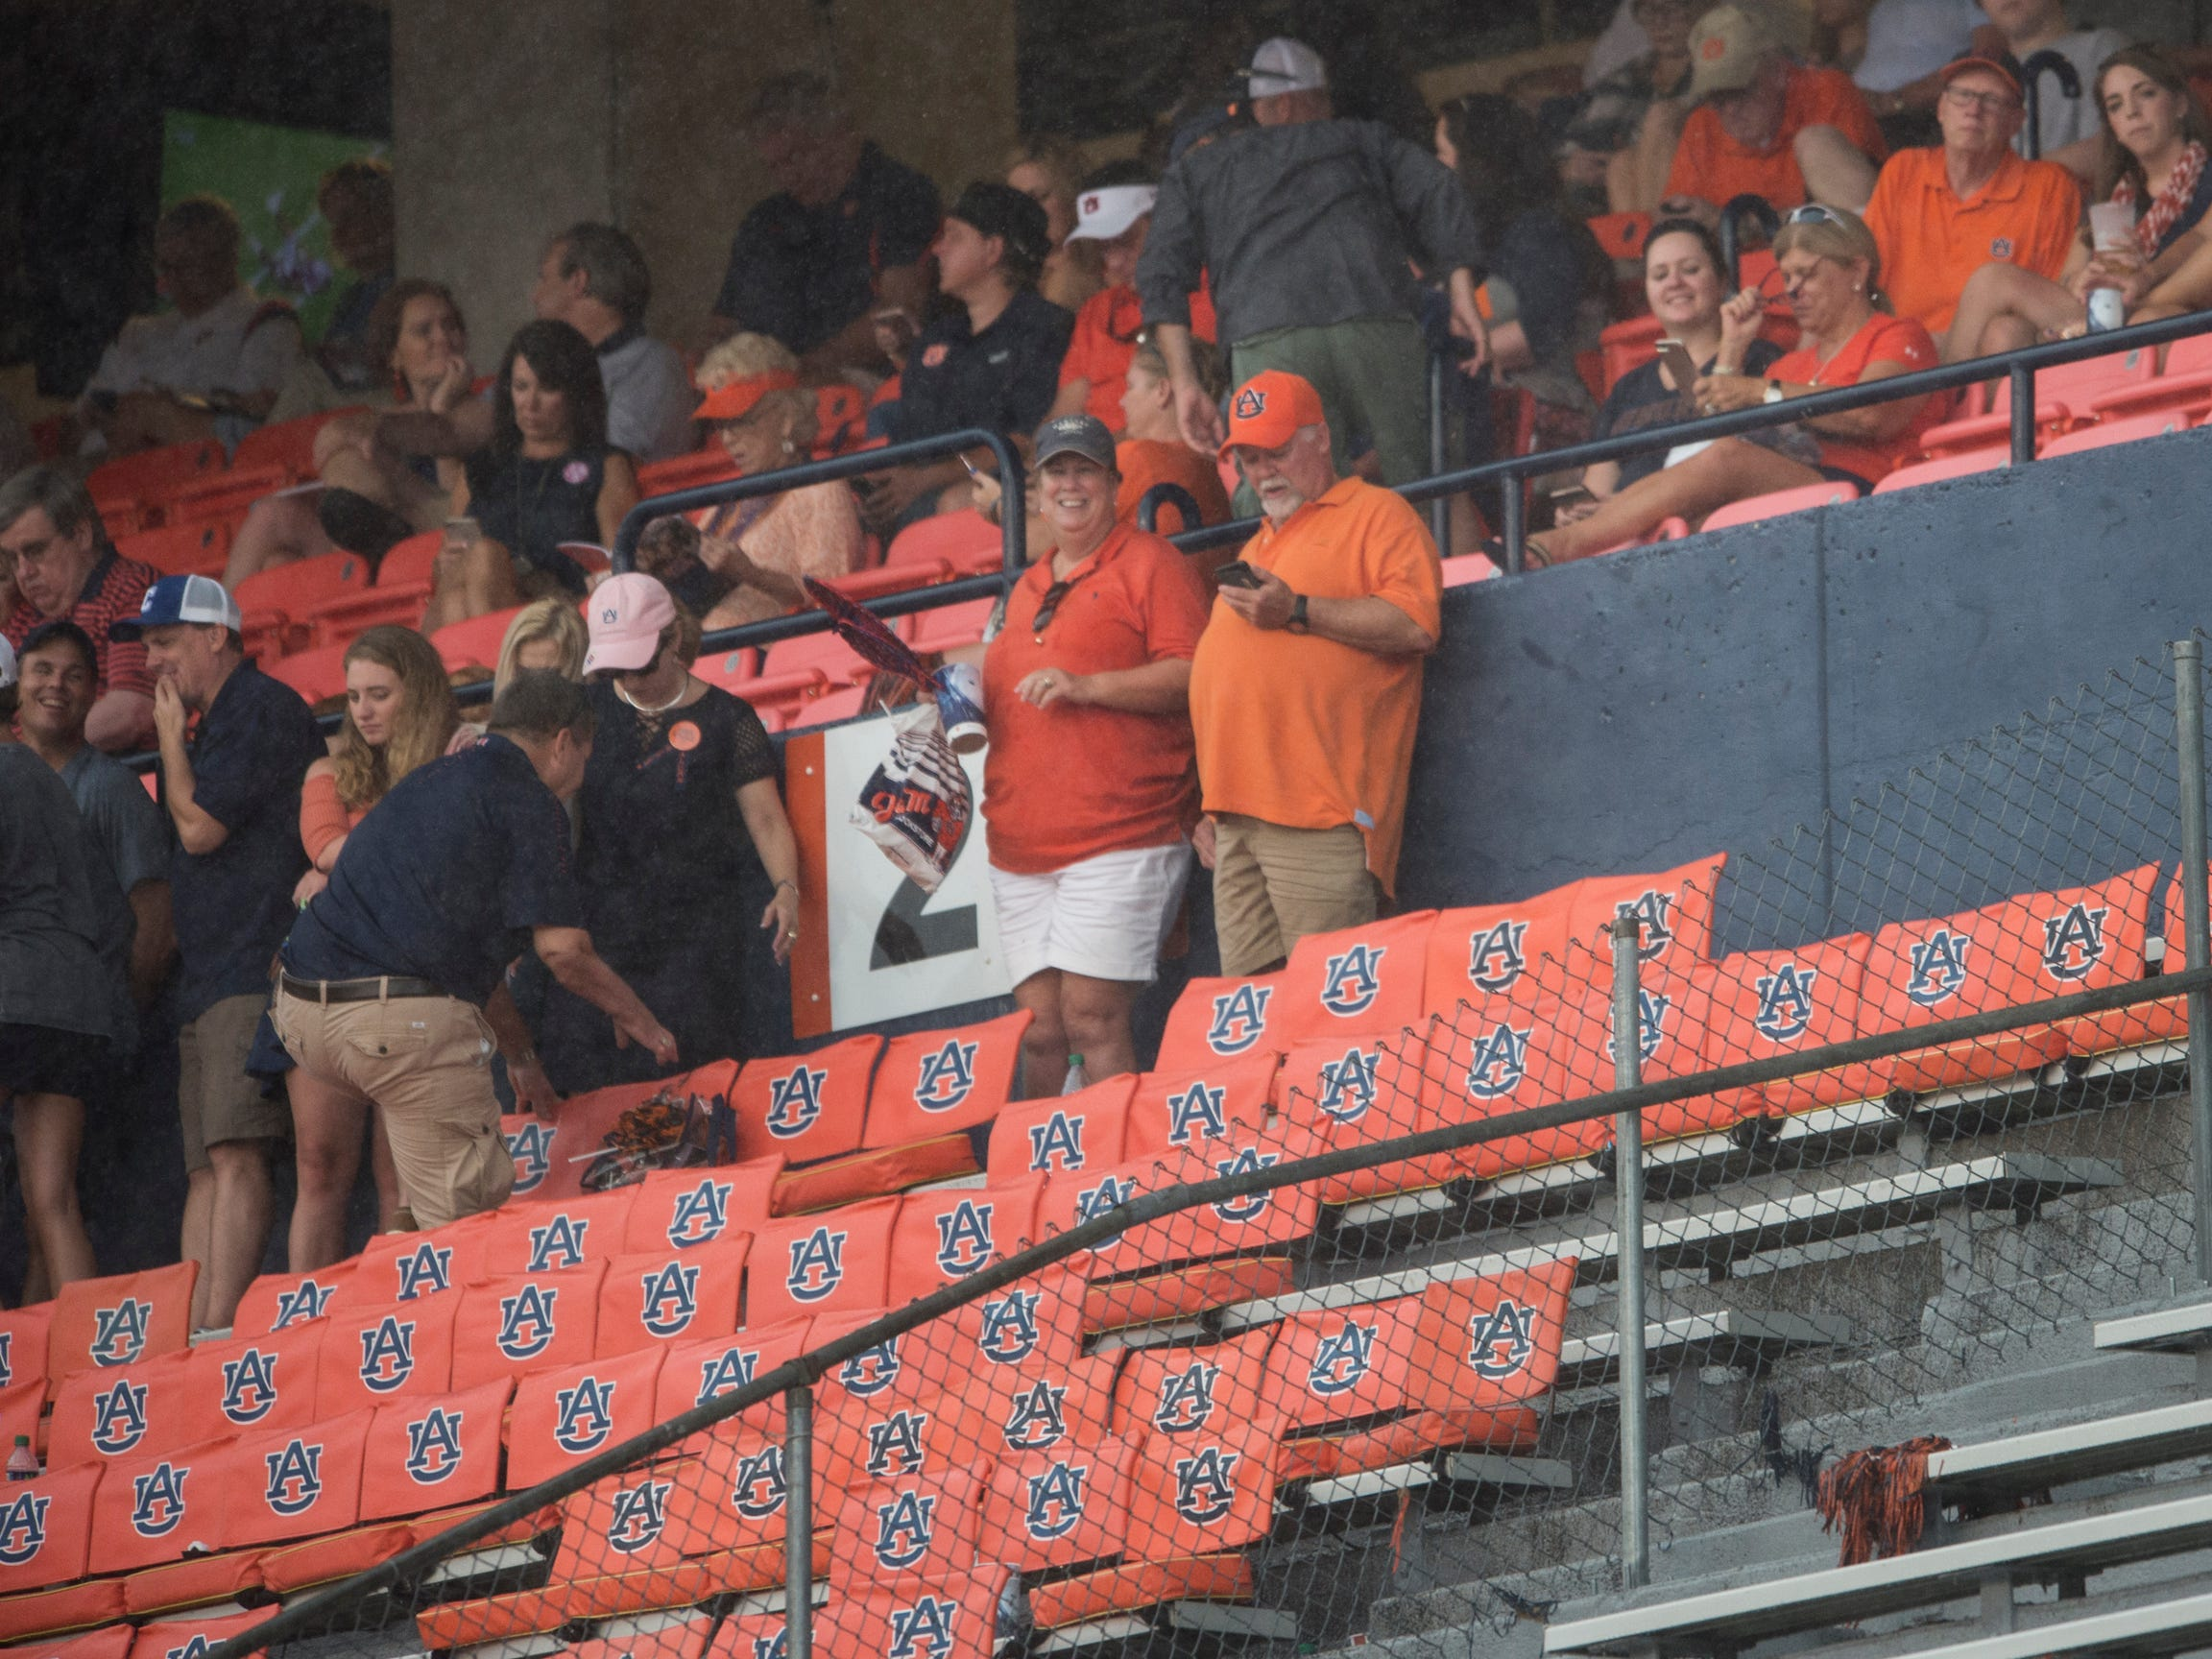 Fans get under cover during a weather delay at Jordan-Hare Stadium in Auburn, Ala., on Saturday, Sept. 29, 2018. Auburn leads Southern Miss 14-3, the game went into a weather delay with 4:27 left in the second quarter.